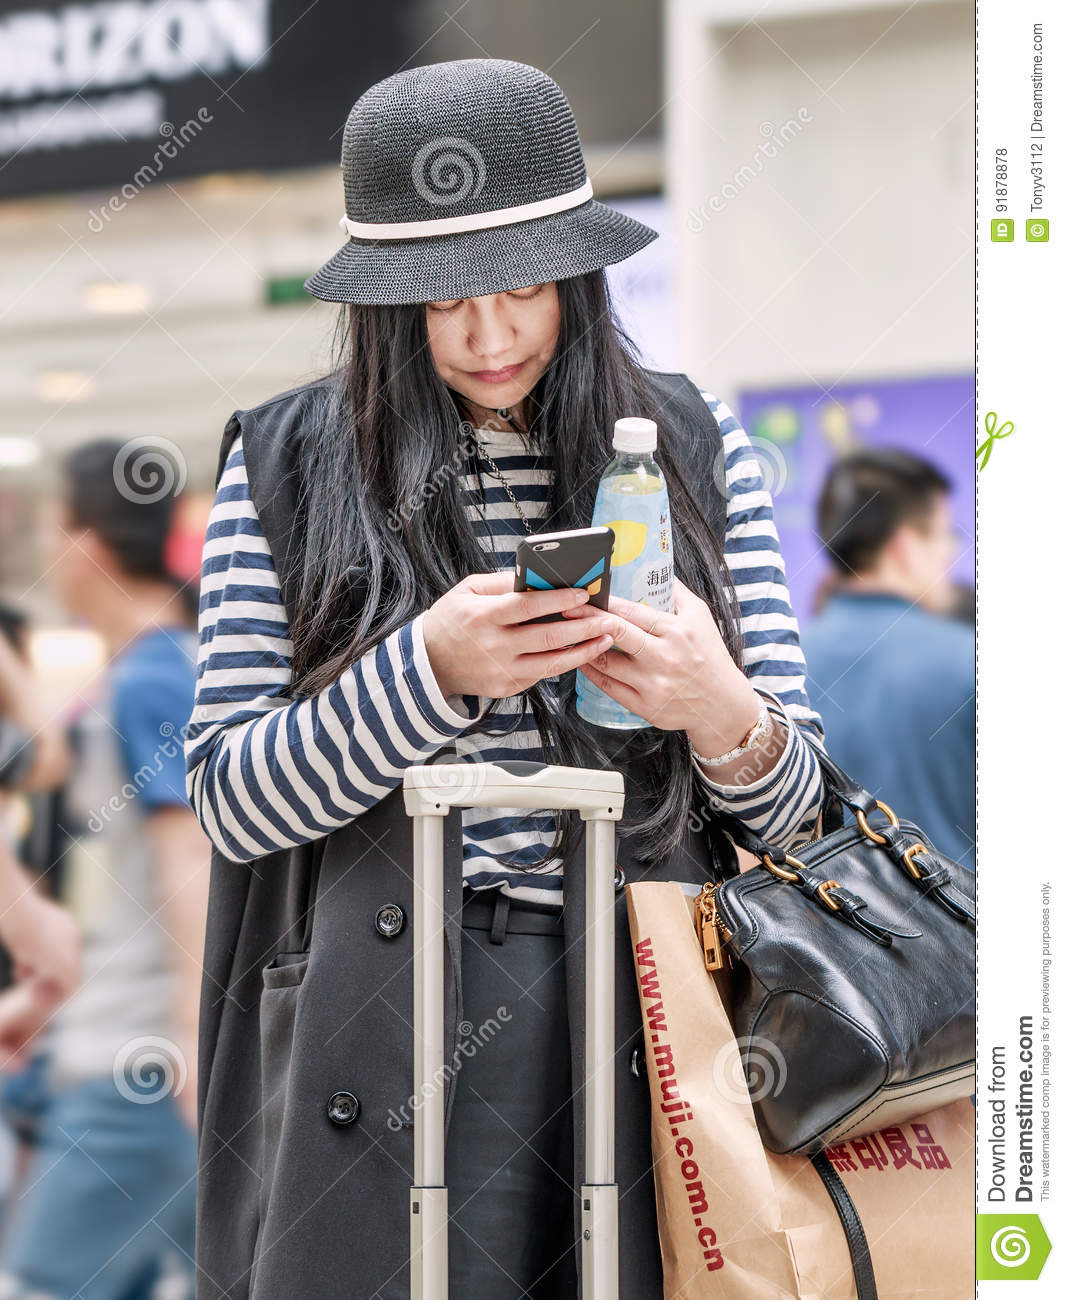 Fashionable young girl busy with her smart phone, Beijing, China